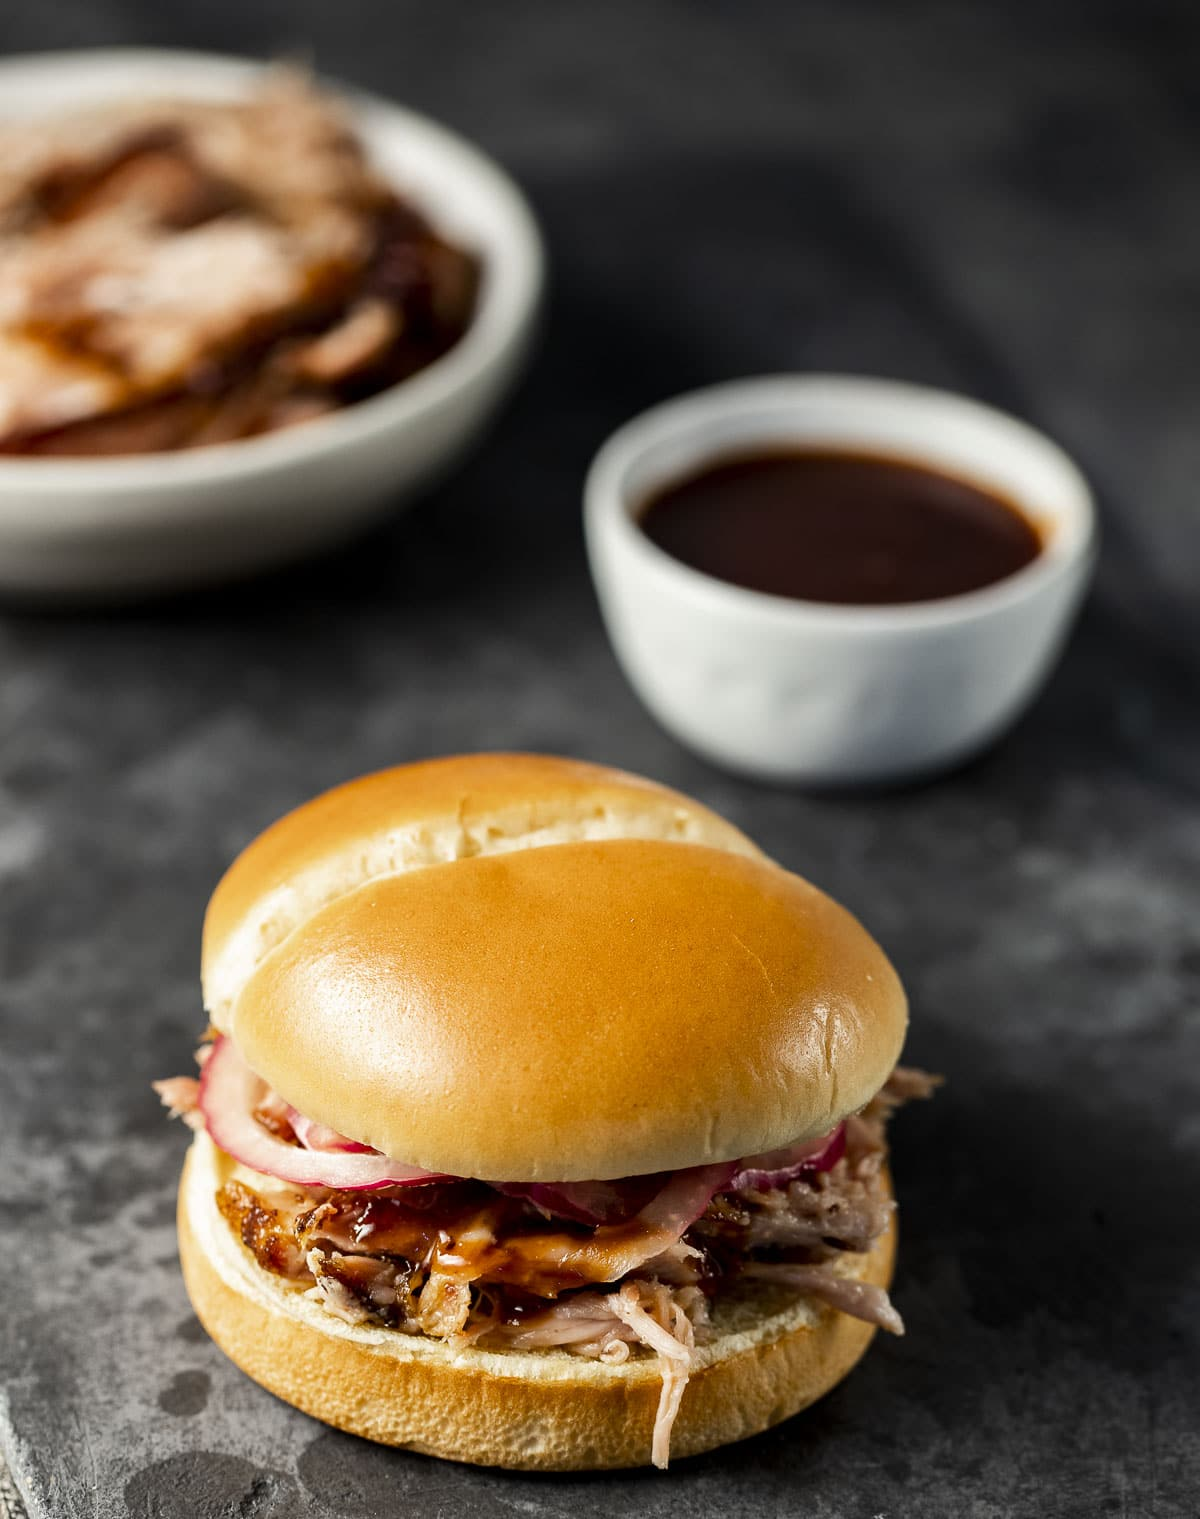 Pulled pork on a bun with BBQ sauce and pulled pork in the background.